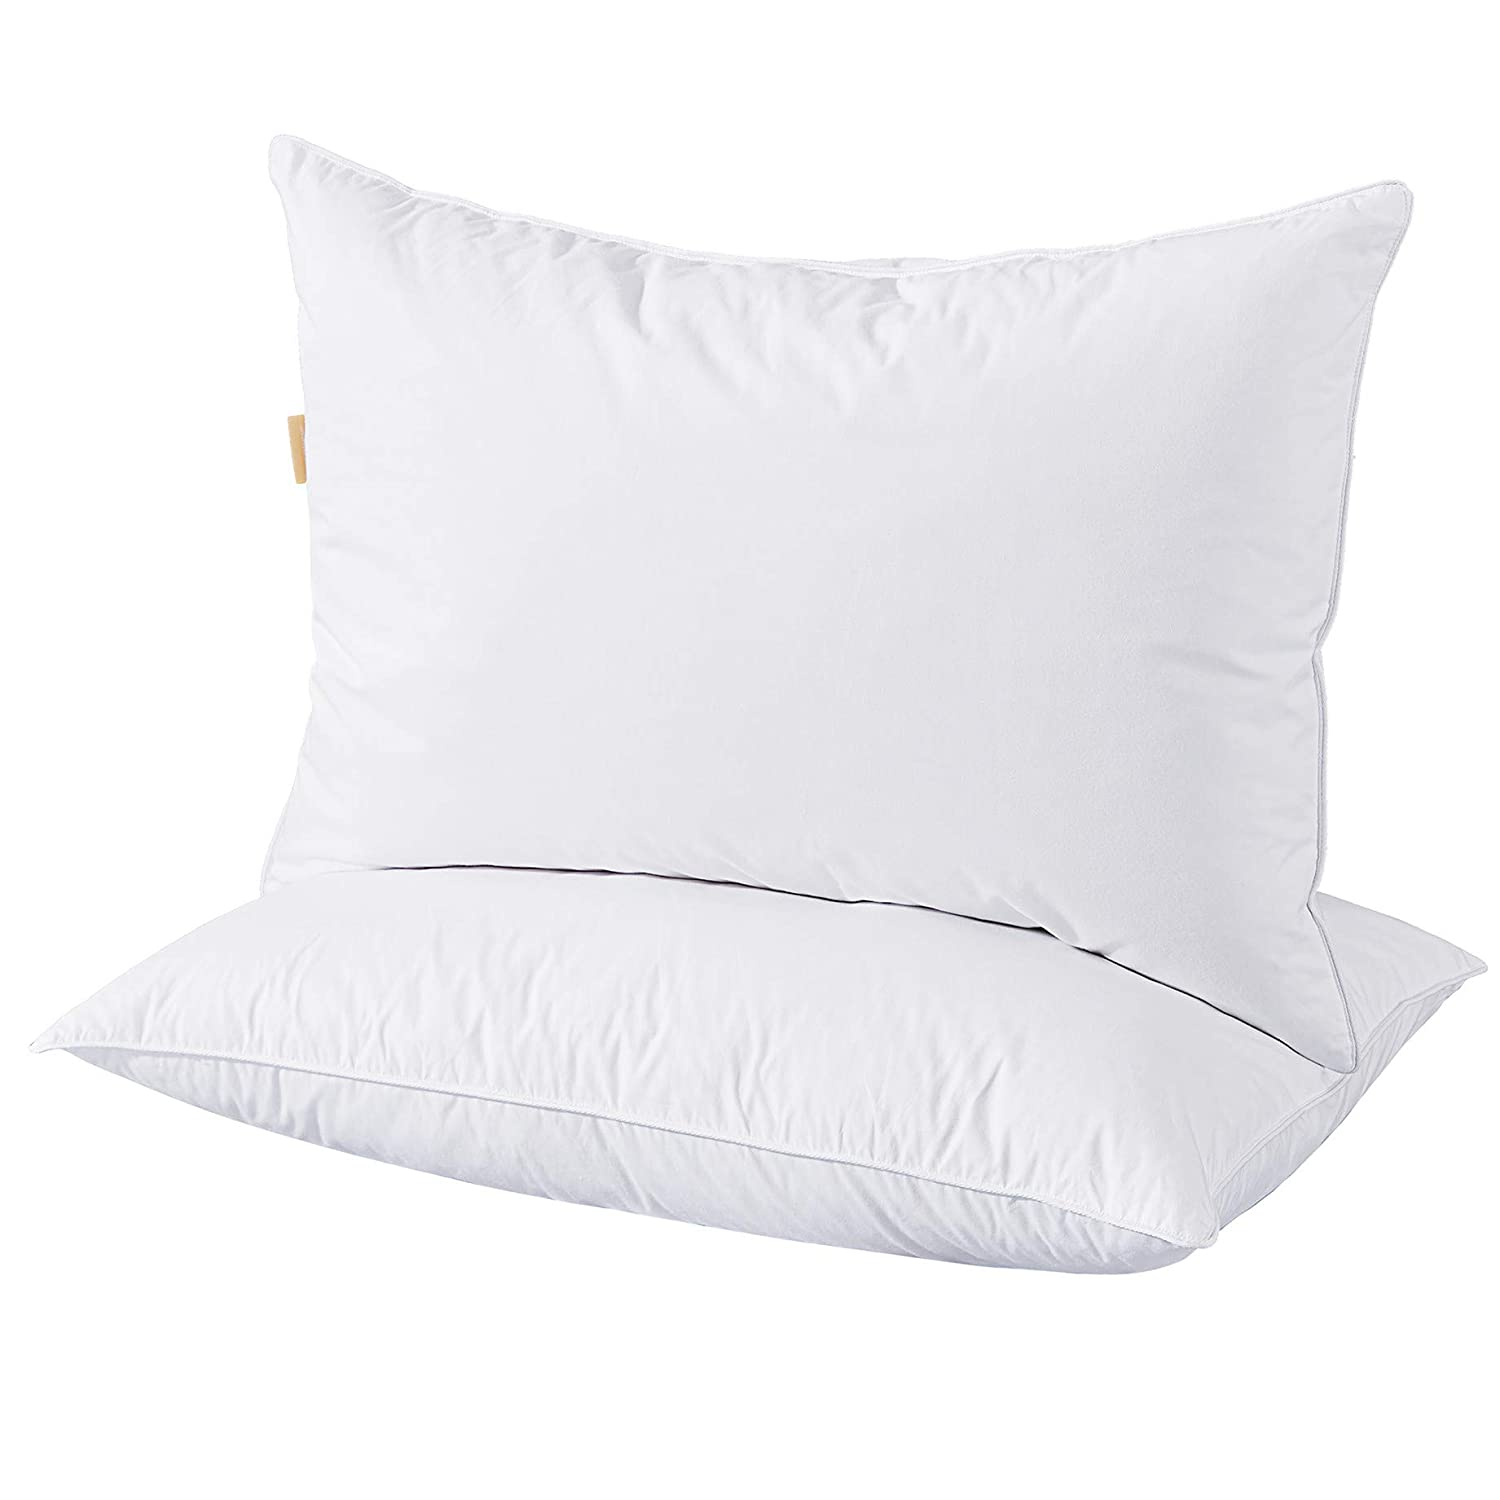 Puredown Goose Down and Feather Bed Pillow, King, White, Set of 2 bed pillows Bed pillows reviews – How to choose the perfect pillow 61LZsS5sHAL